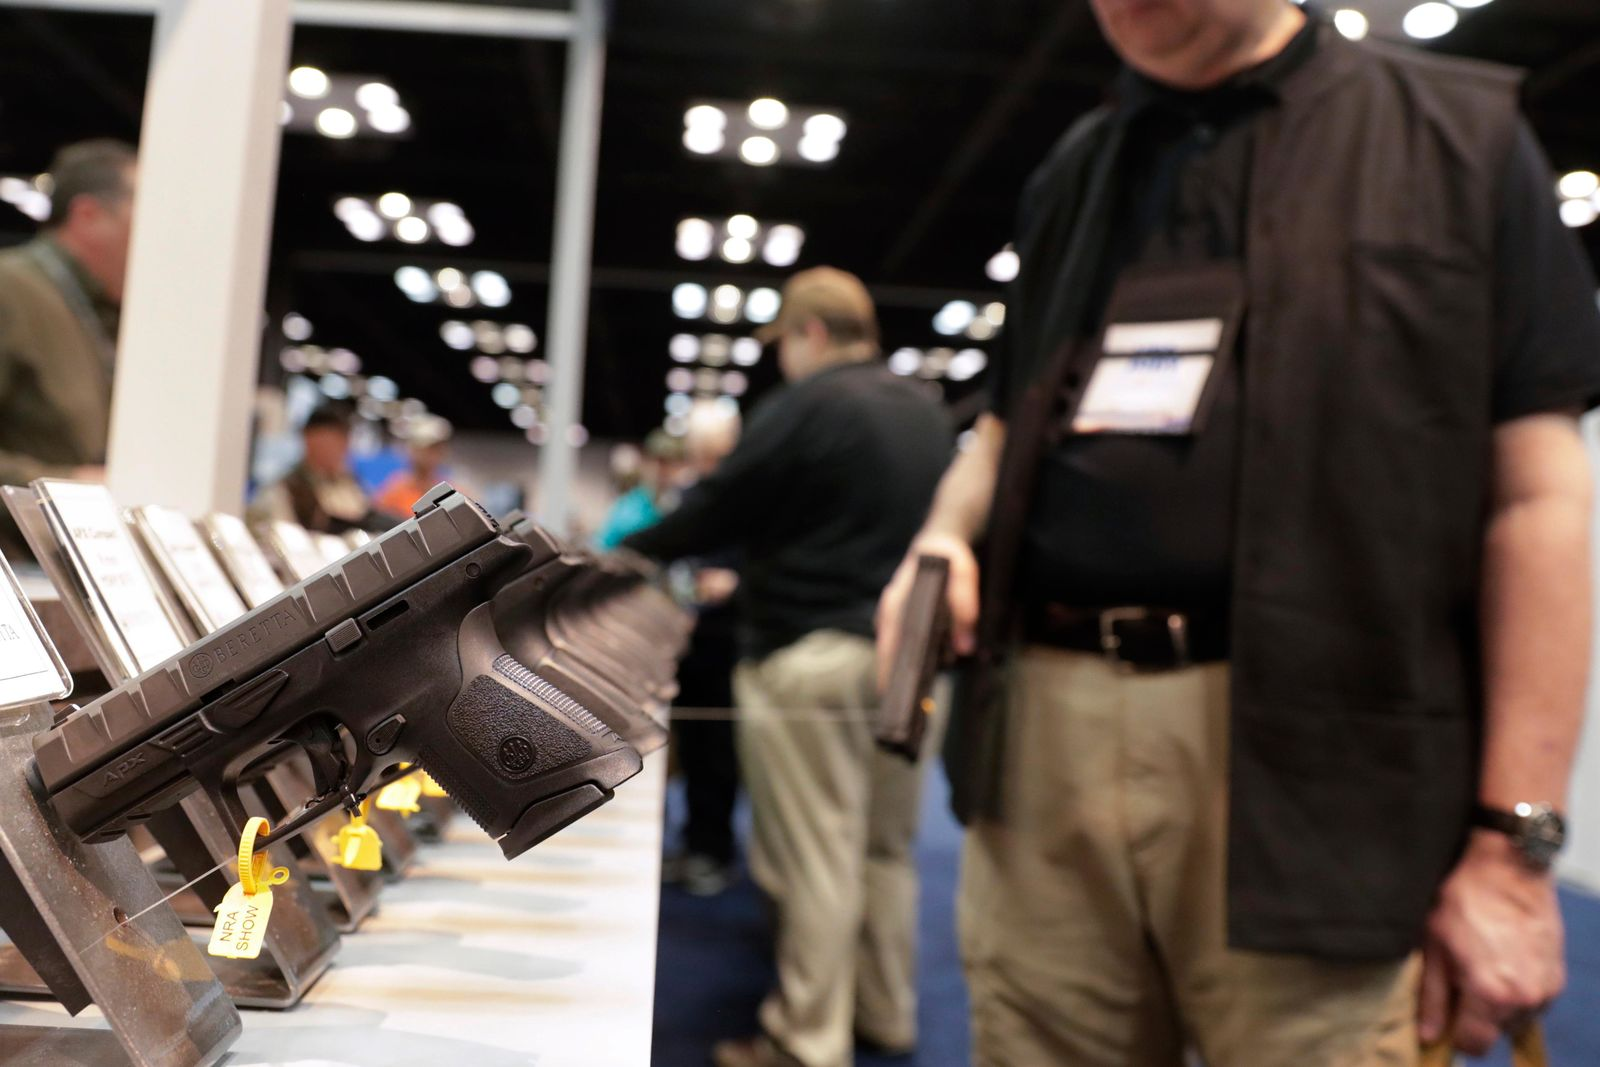 FILE - In this April 27, 2019, file photo, a gun enthusiast looks over the display of pistols in the exhibition hall at the National Rifle Association annual meeting in Indianapolis. (AP Photo/Michael Conroy, File)